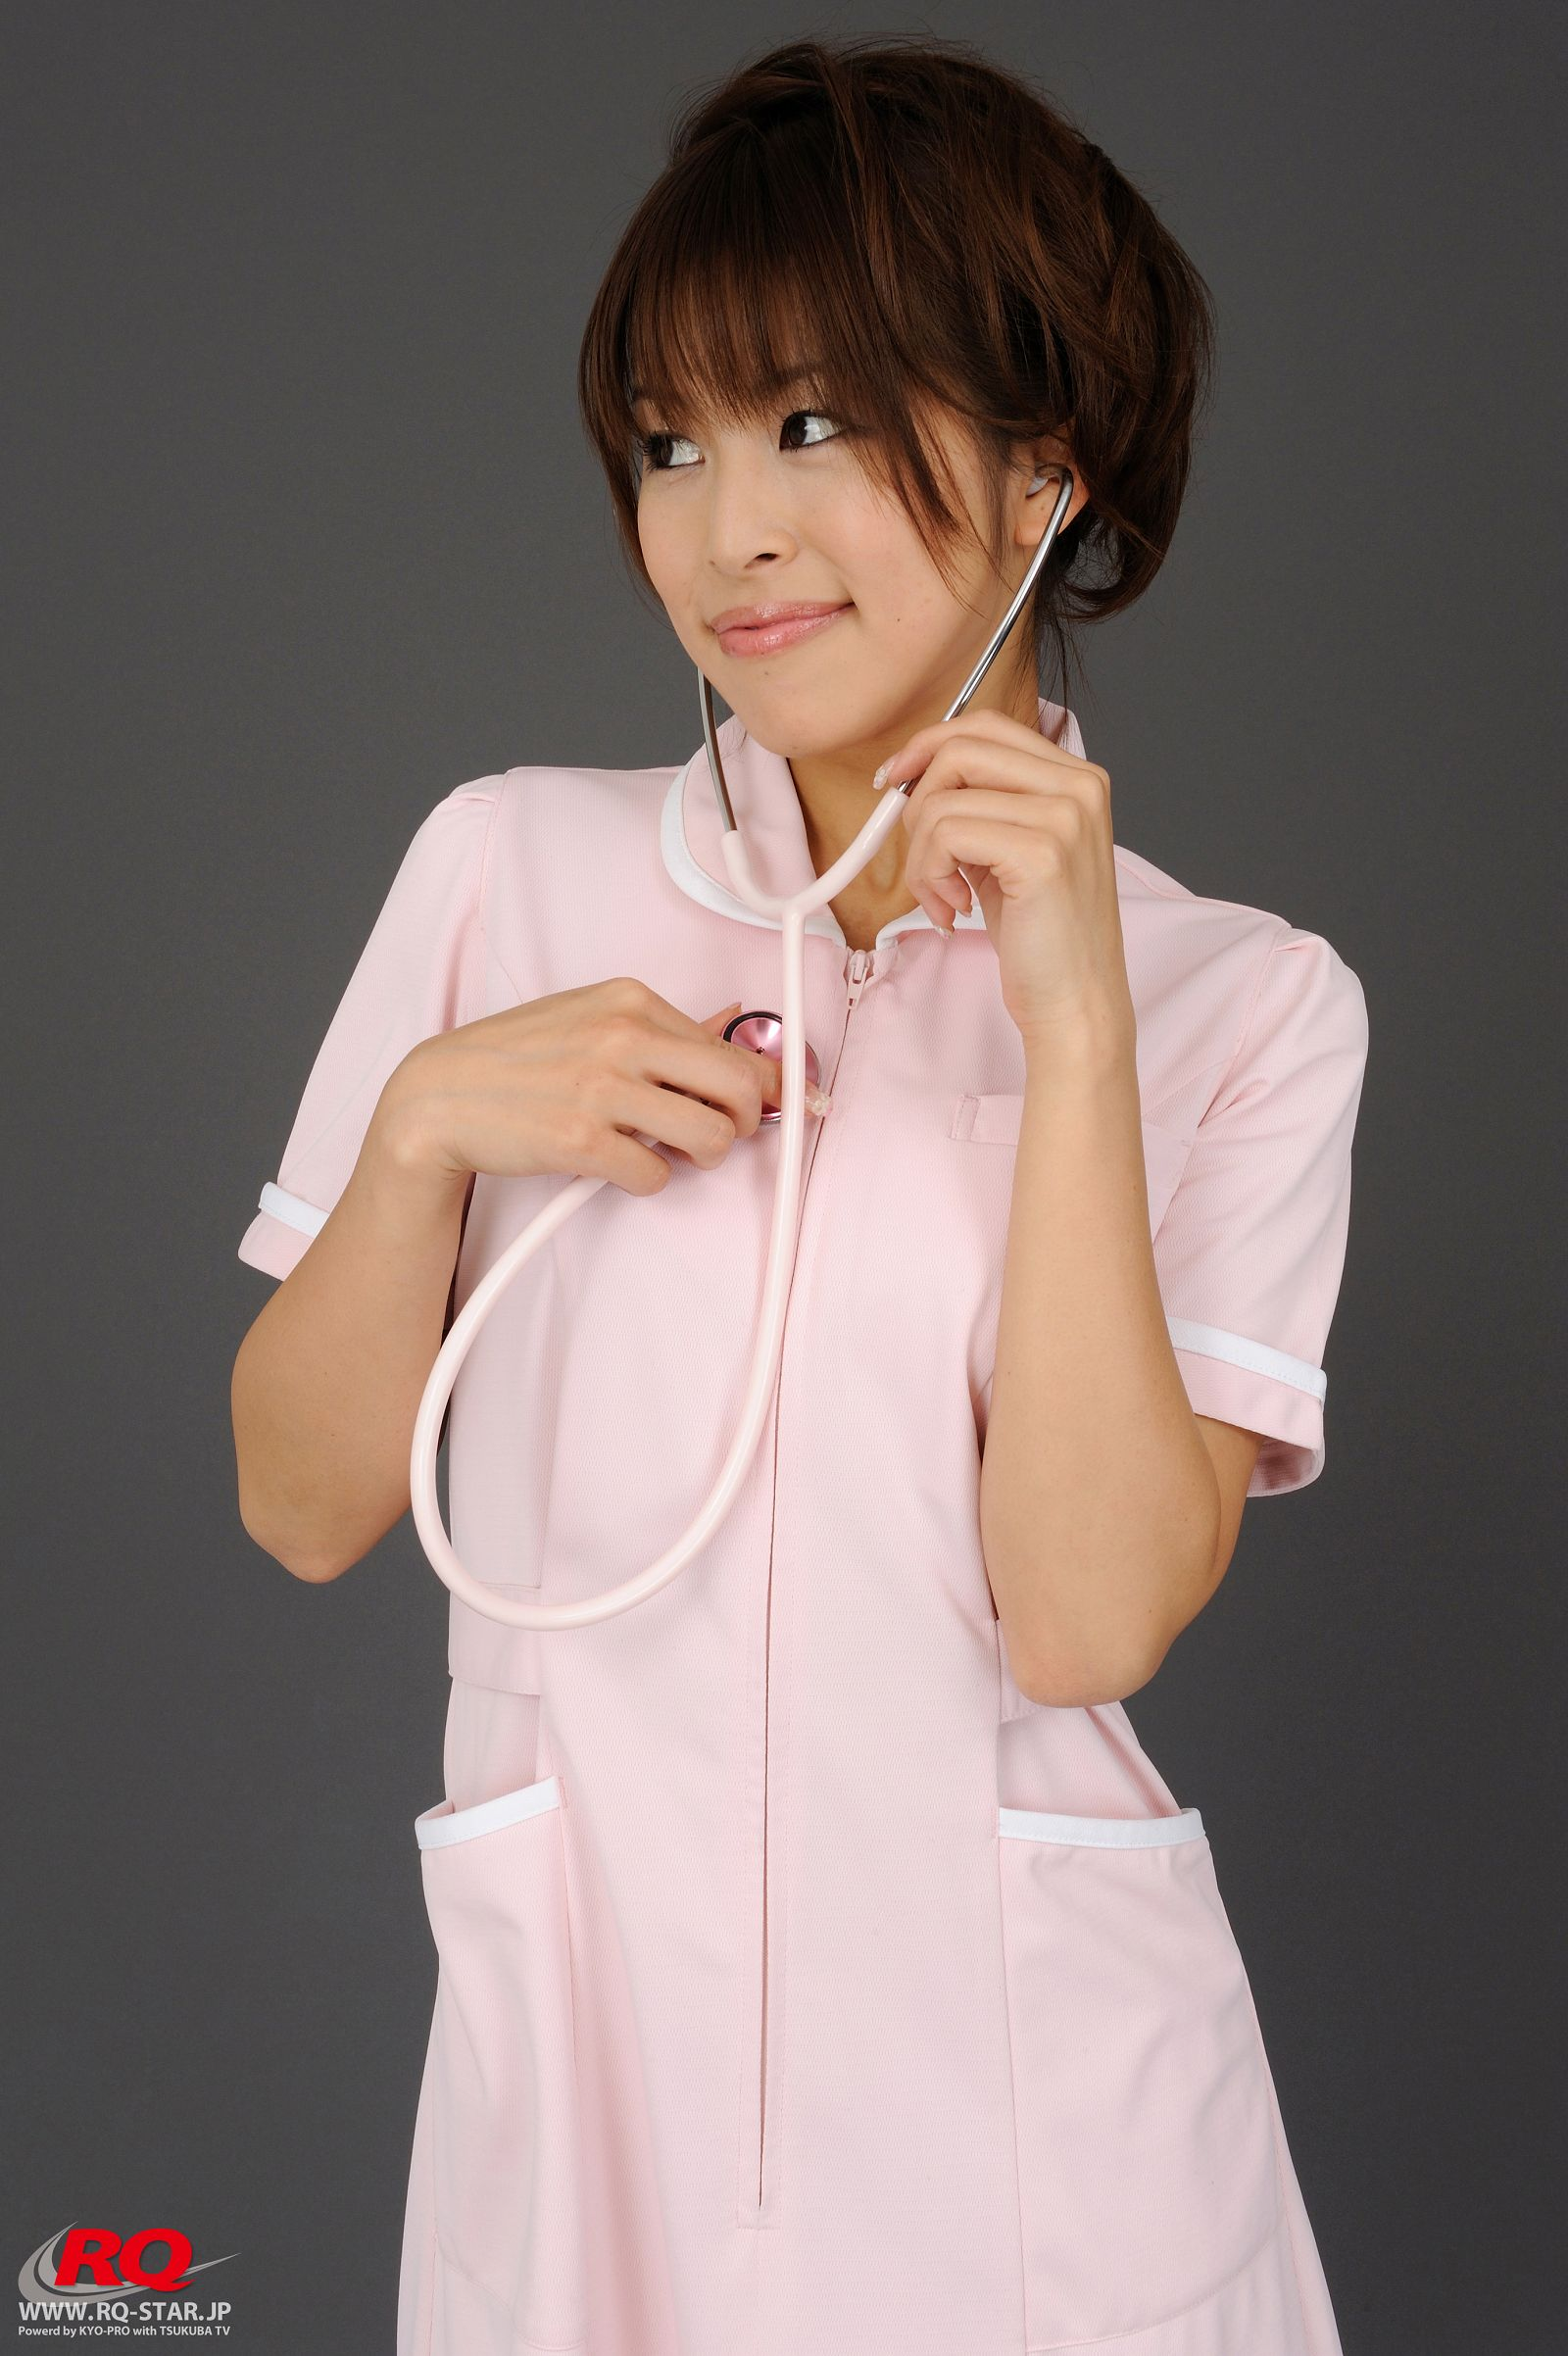 [RQ STAR美女] NO.01100 Umi Kurihara 栗原海 Nurse Costume[72P] RQ STAR 第4张